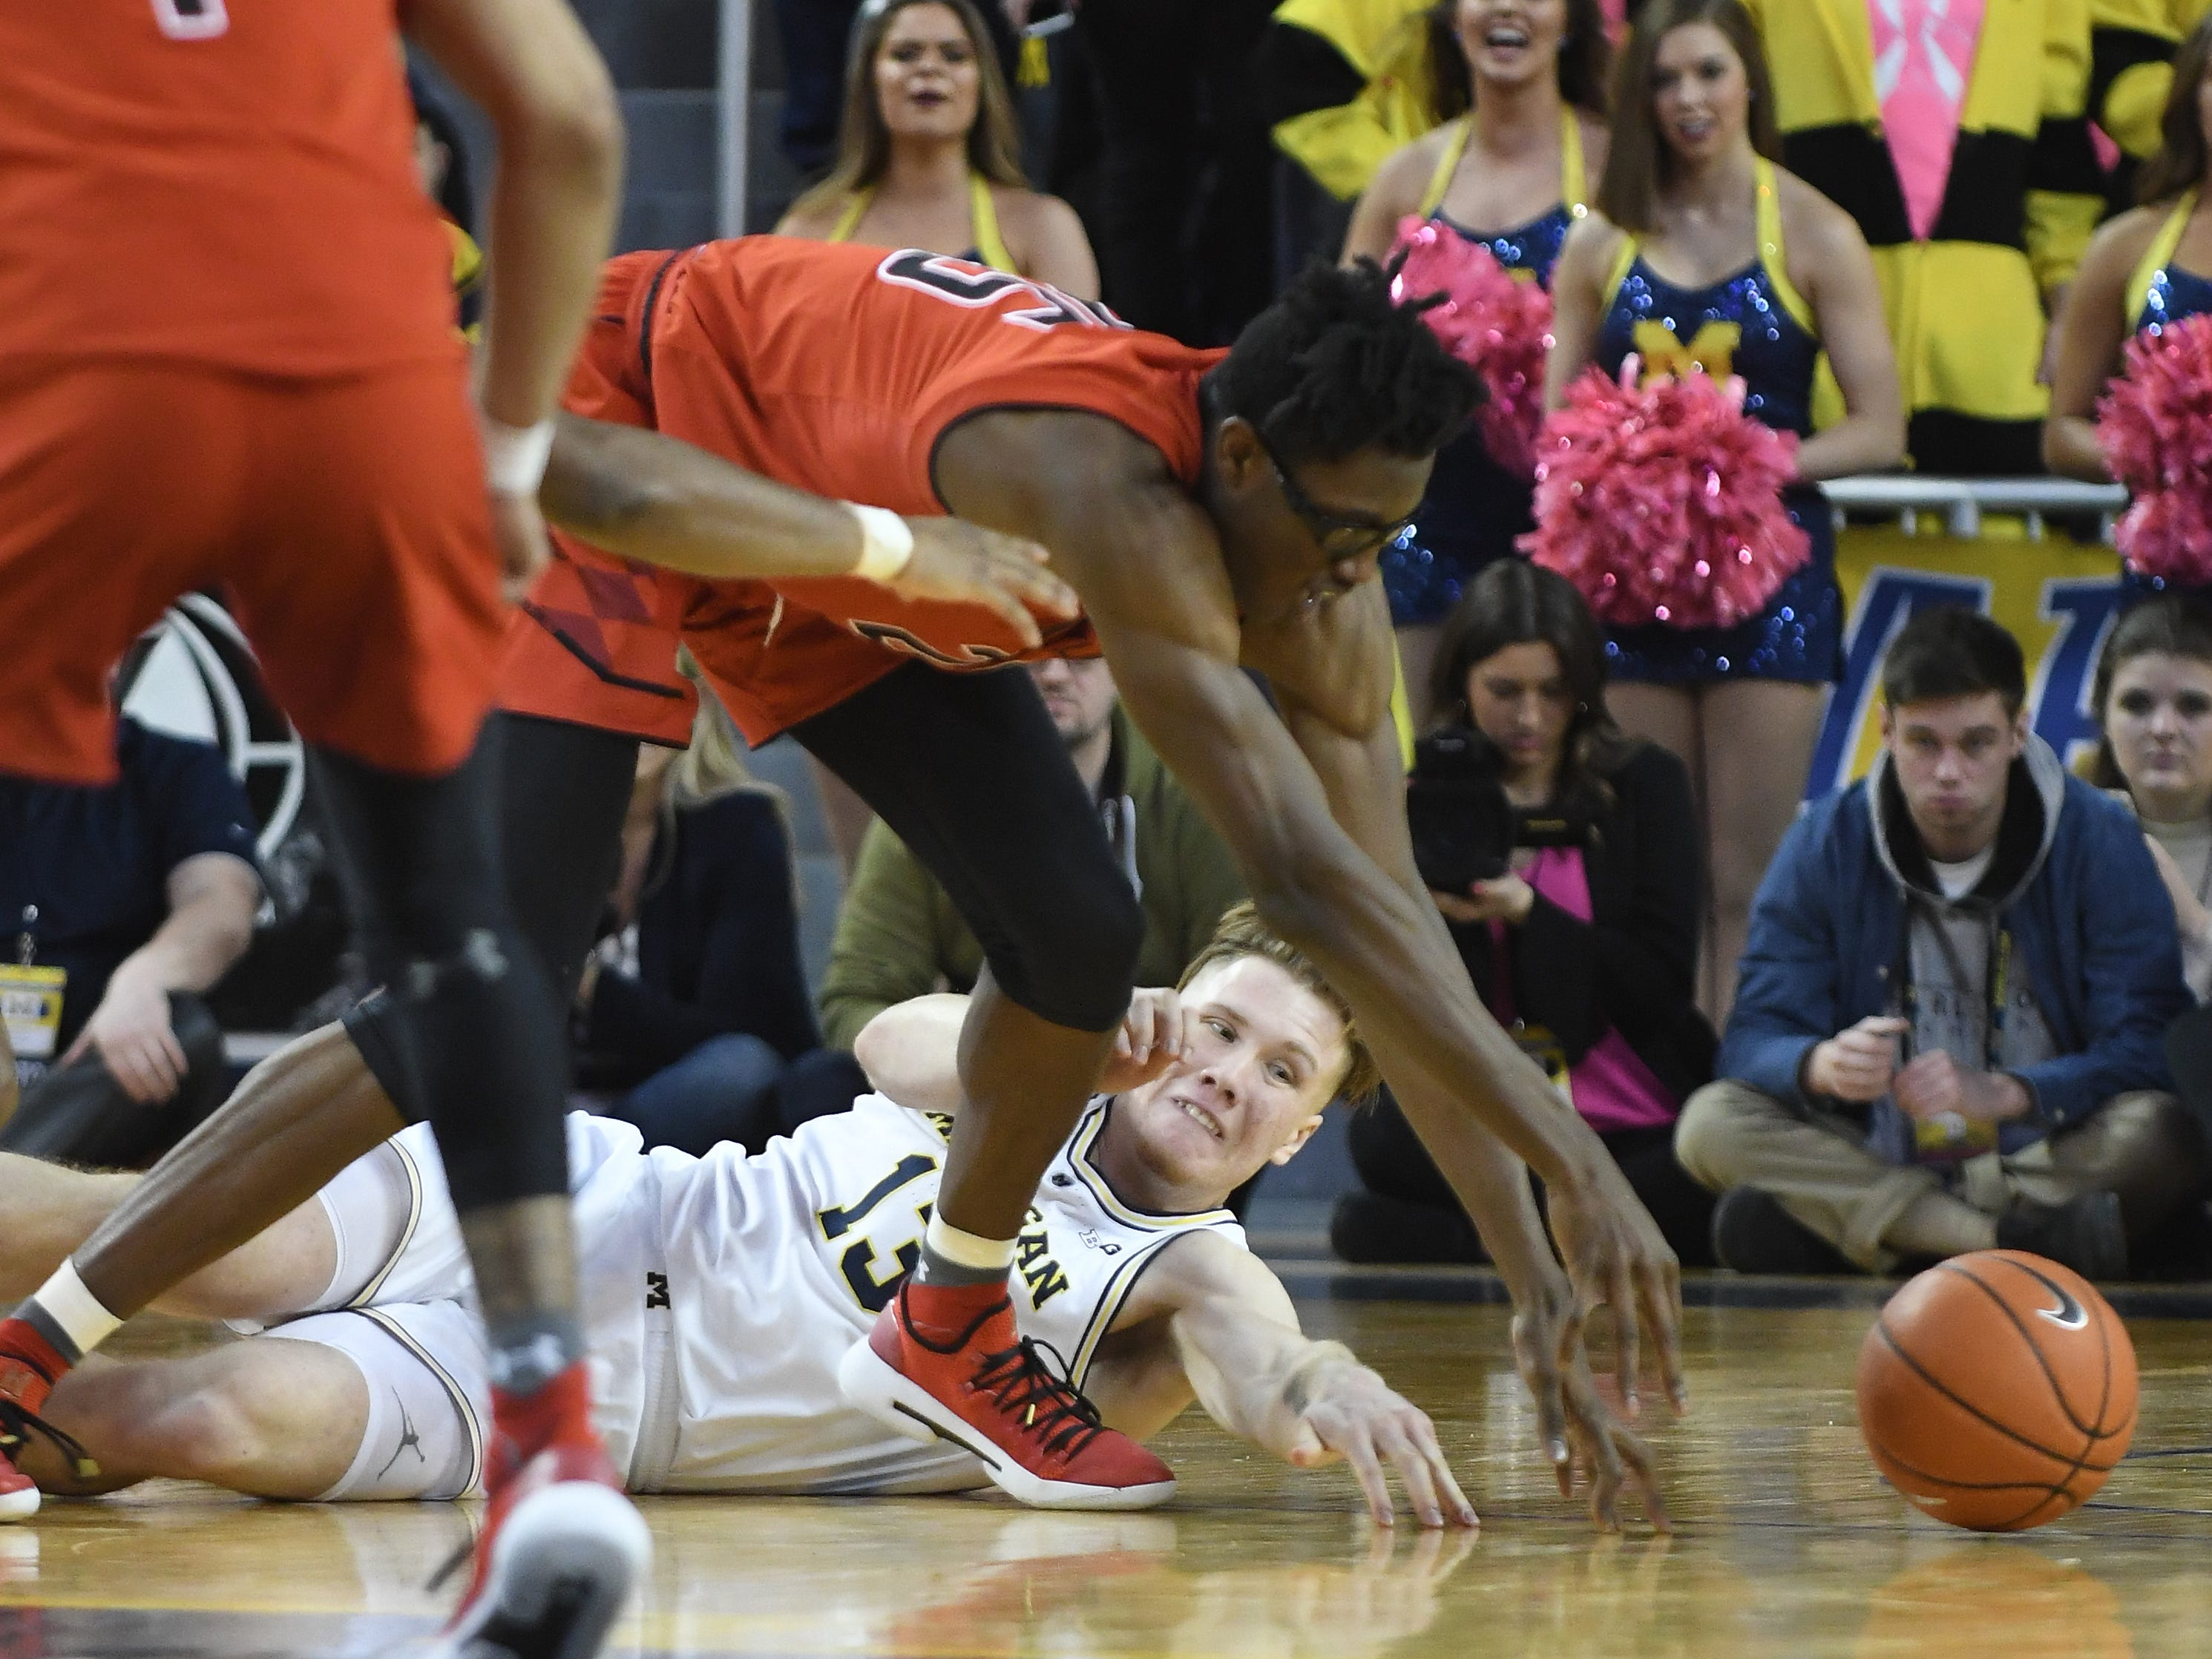 Maryland's Jalen Smith and Michigan's Ignas Brazdeikis hit the floor battling for a loose ball in the second half.